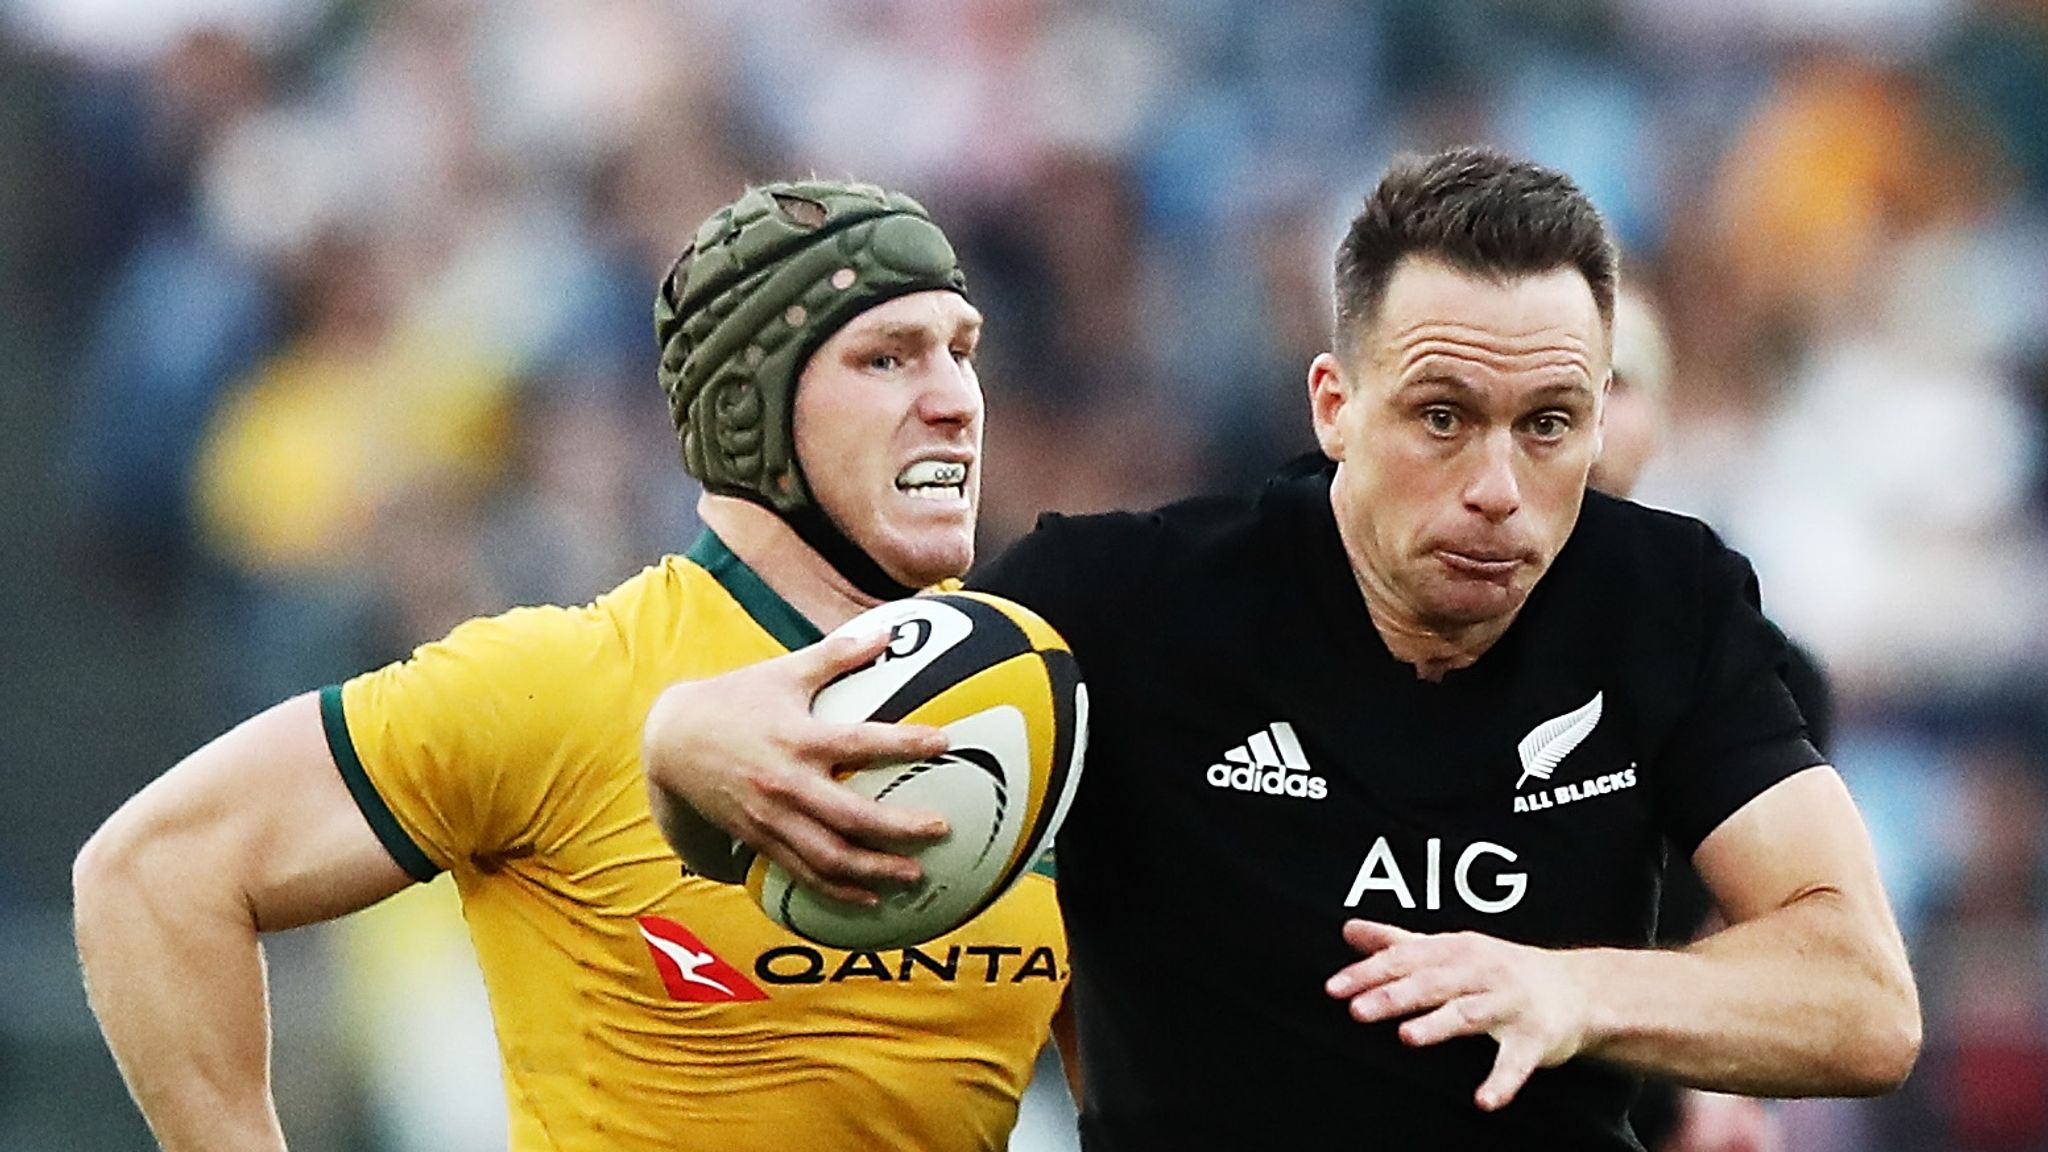 New Zealand Australia Agree Dates For Bledisloe Cup Tests Rugby Union News Sky Sports